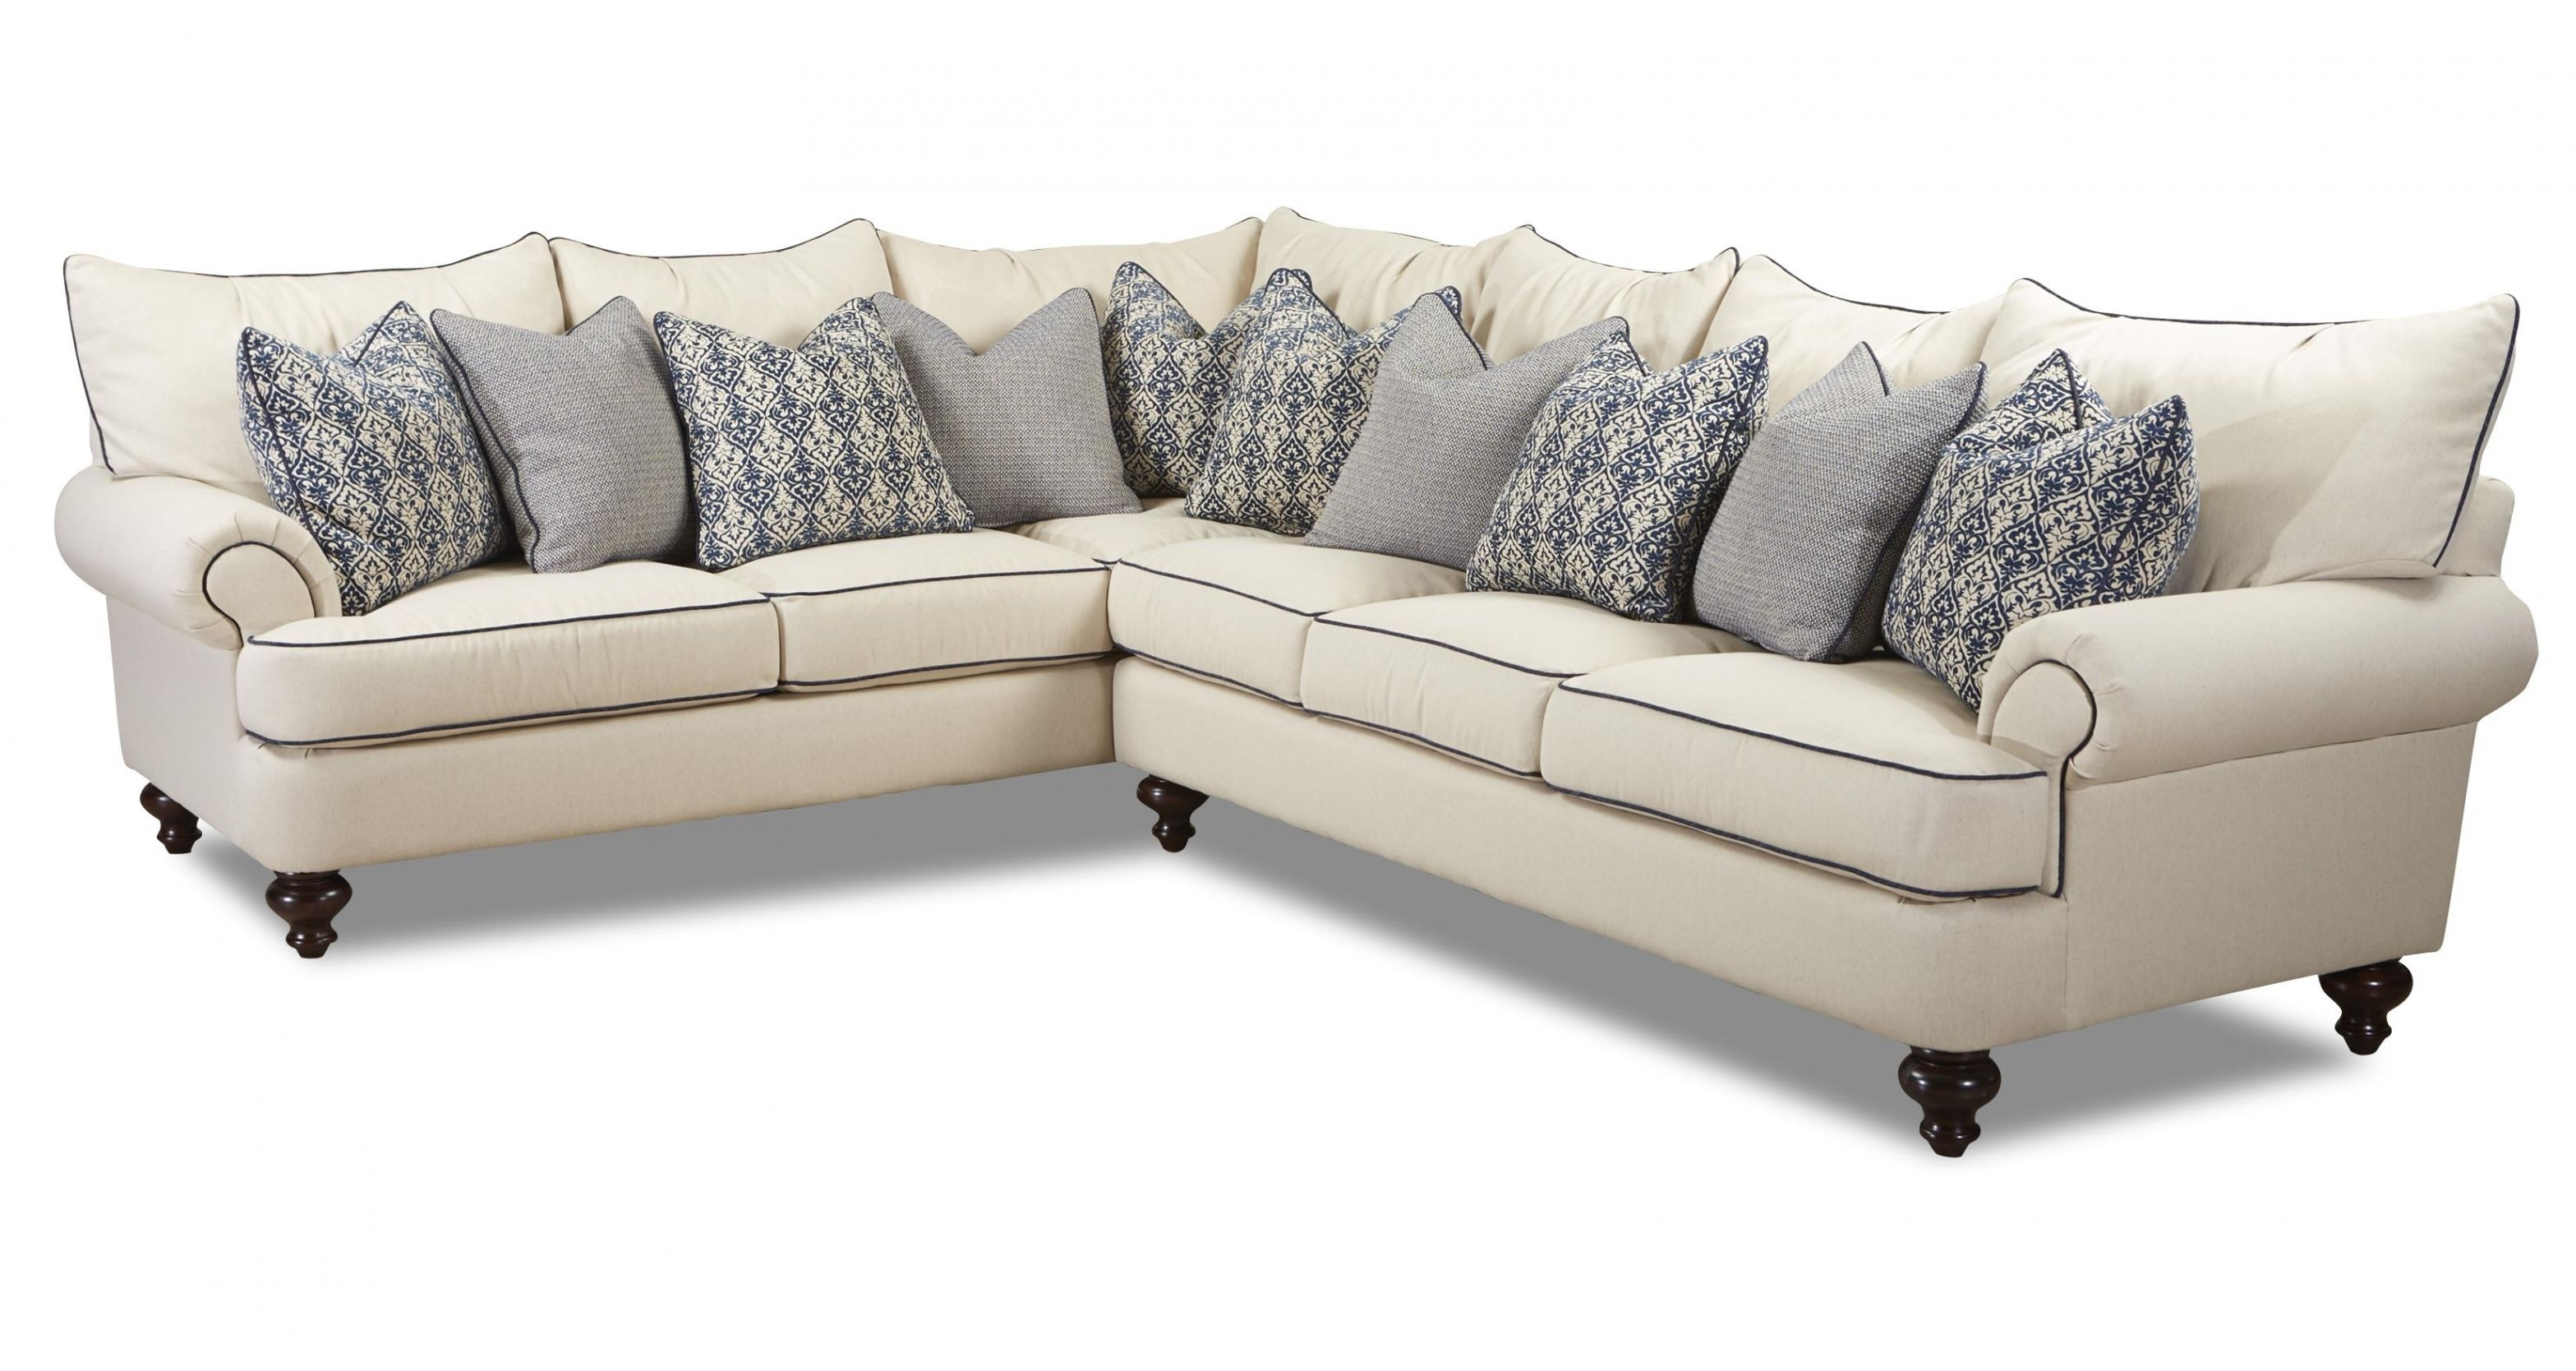 new klaussner sectional sofa architecture-Luxury Klaussner Sectional sofa Décor